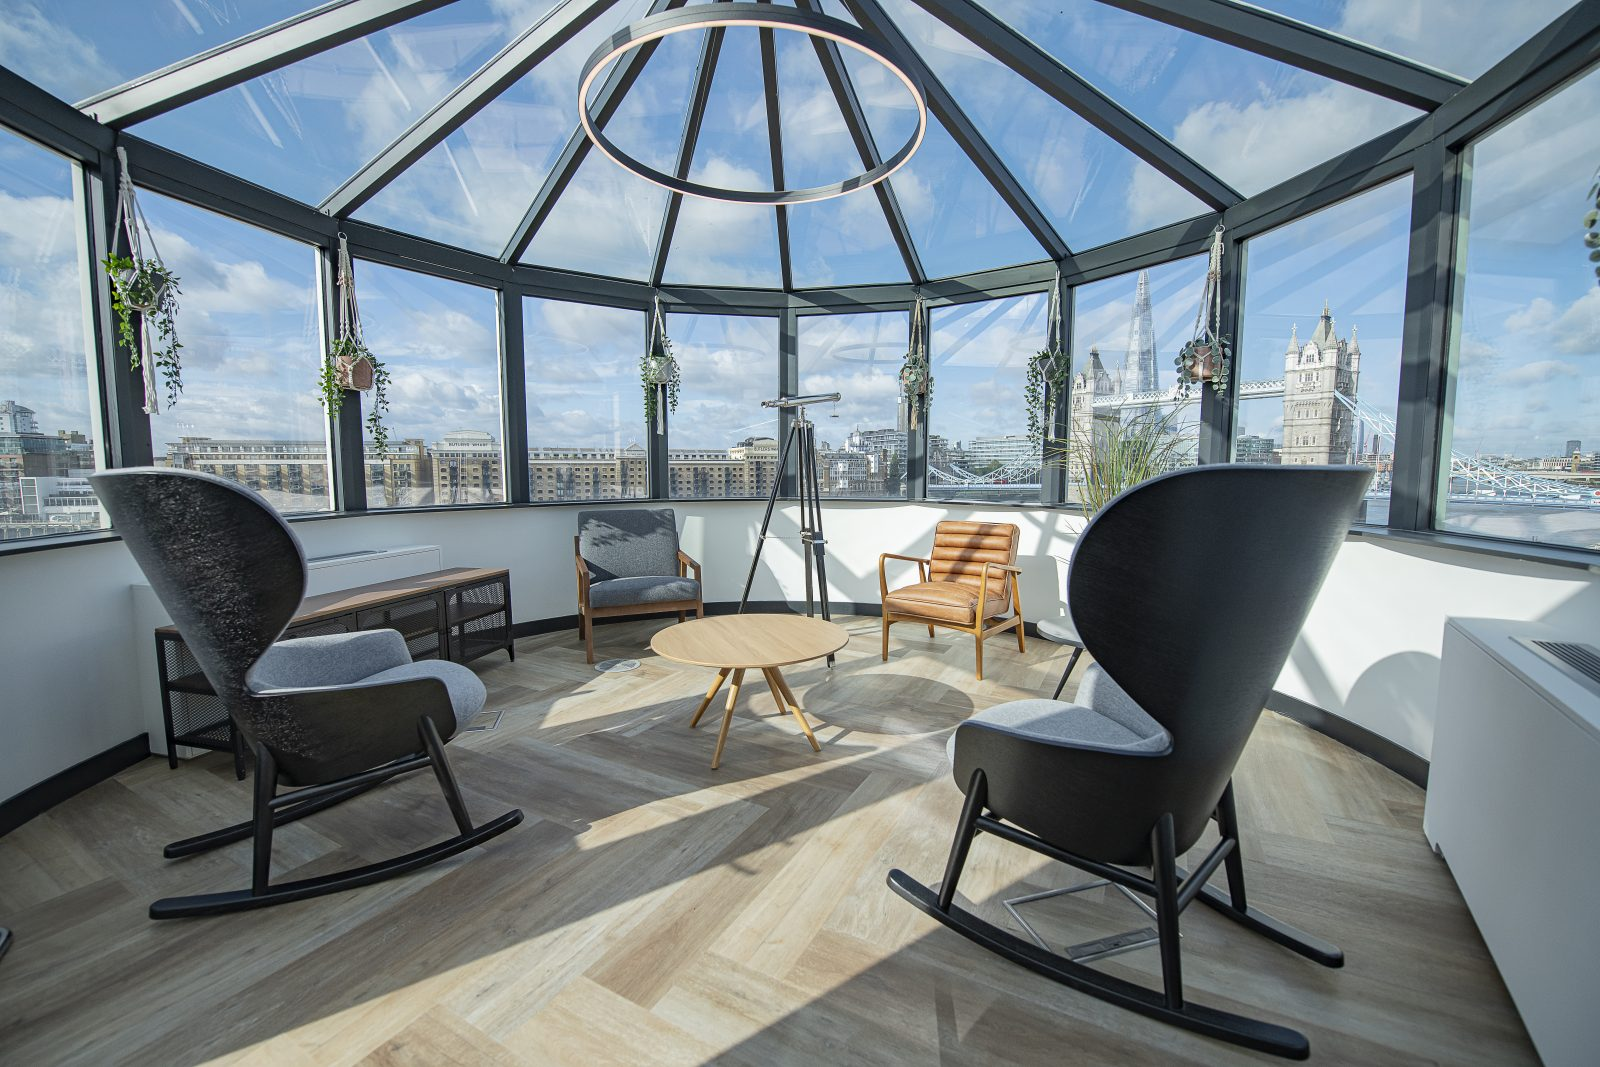 Connection Hygge chairs soft seating Tower Bridge